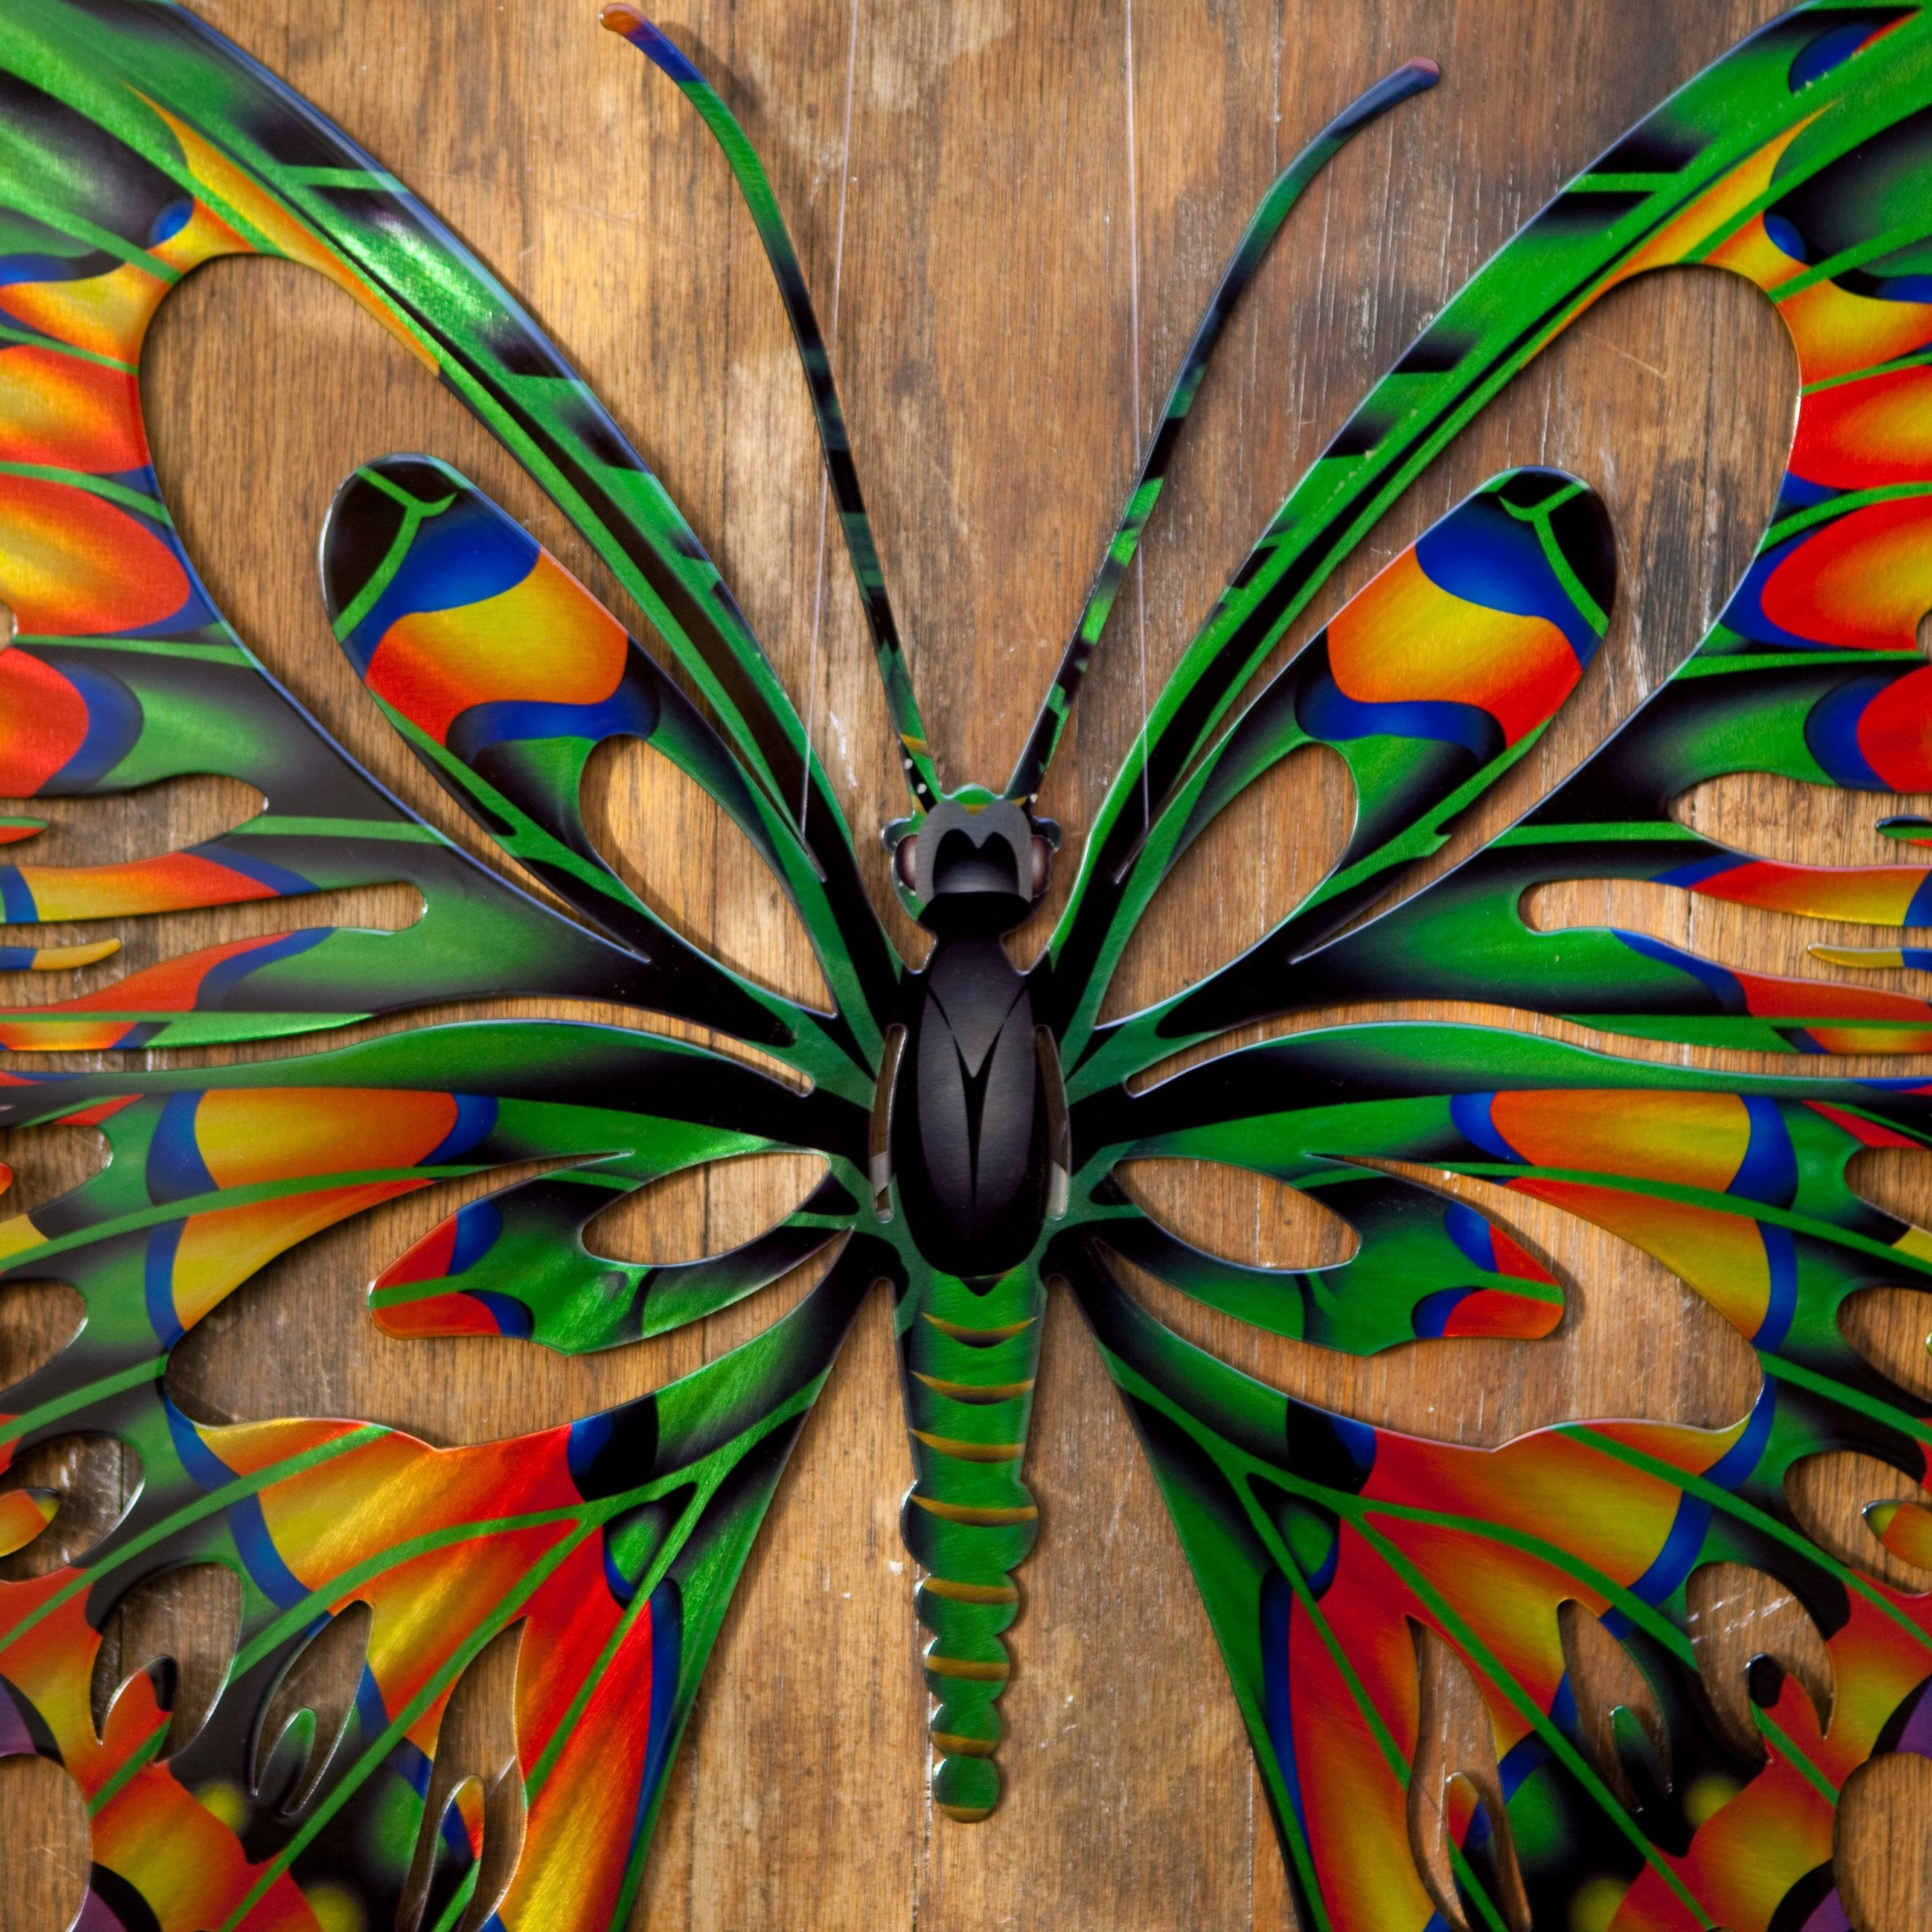 3d Butterfly Metal Outdoor Wall Art | Hayneedle With Current 3d Garden Wall Art (View 11 of 20)